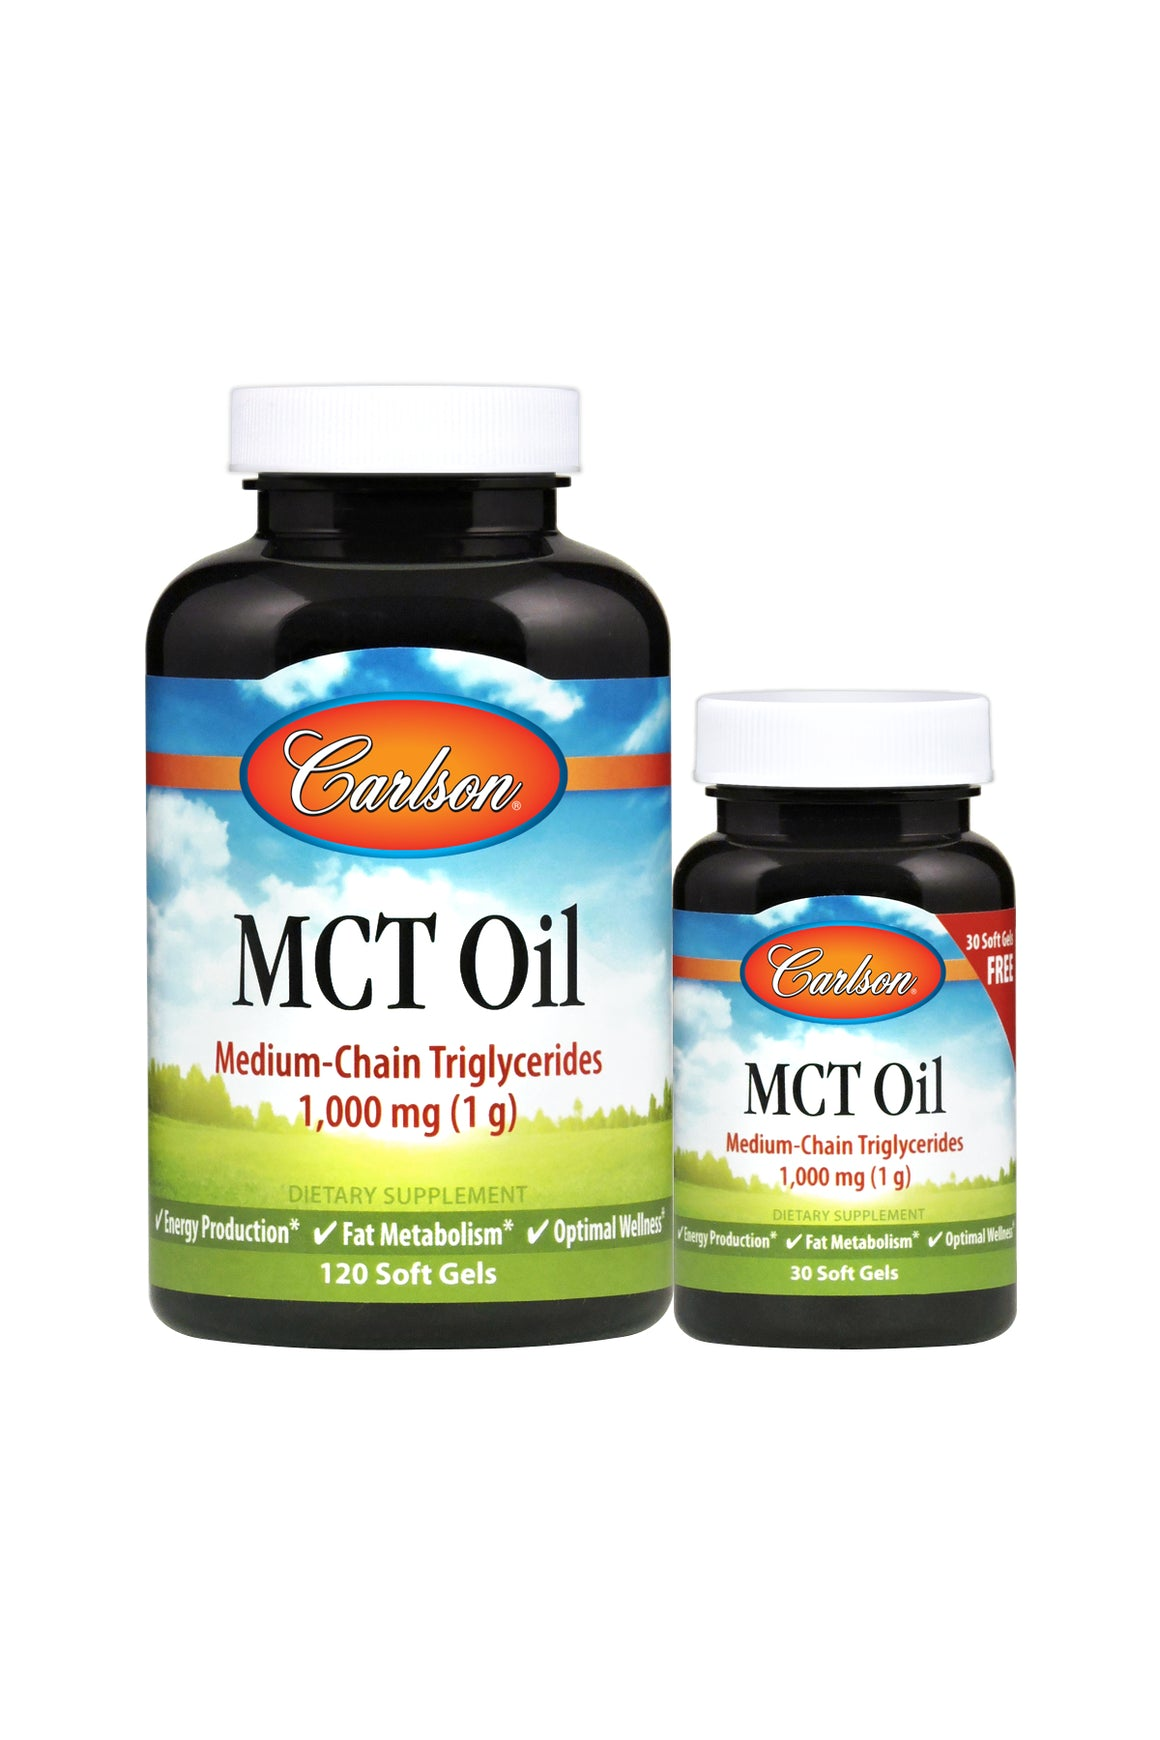 Two jars of Carlson MCT Oil